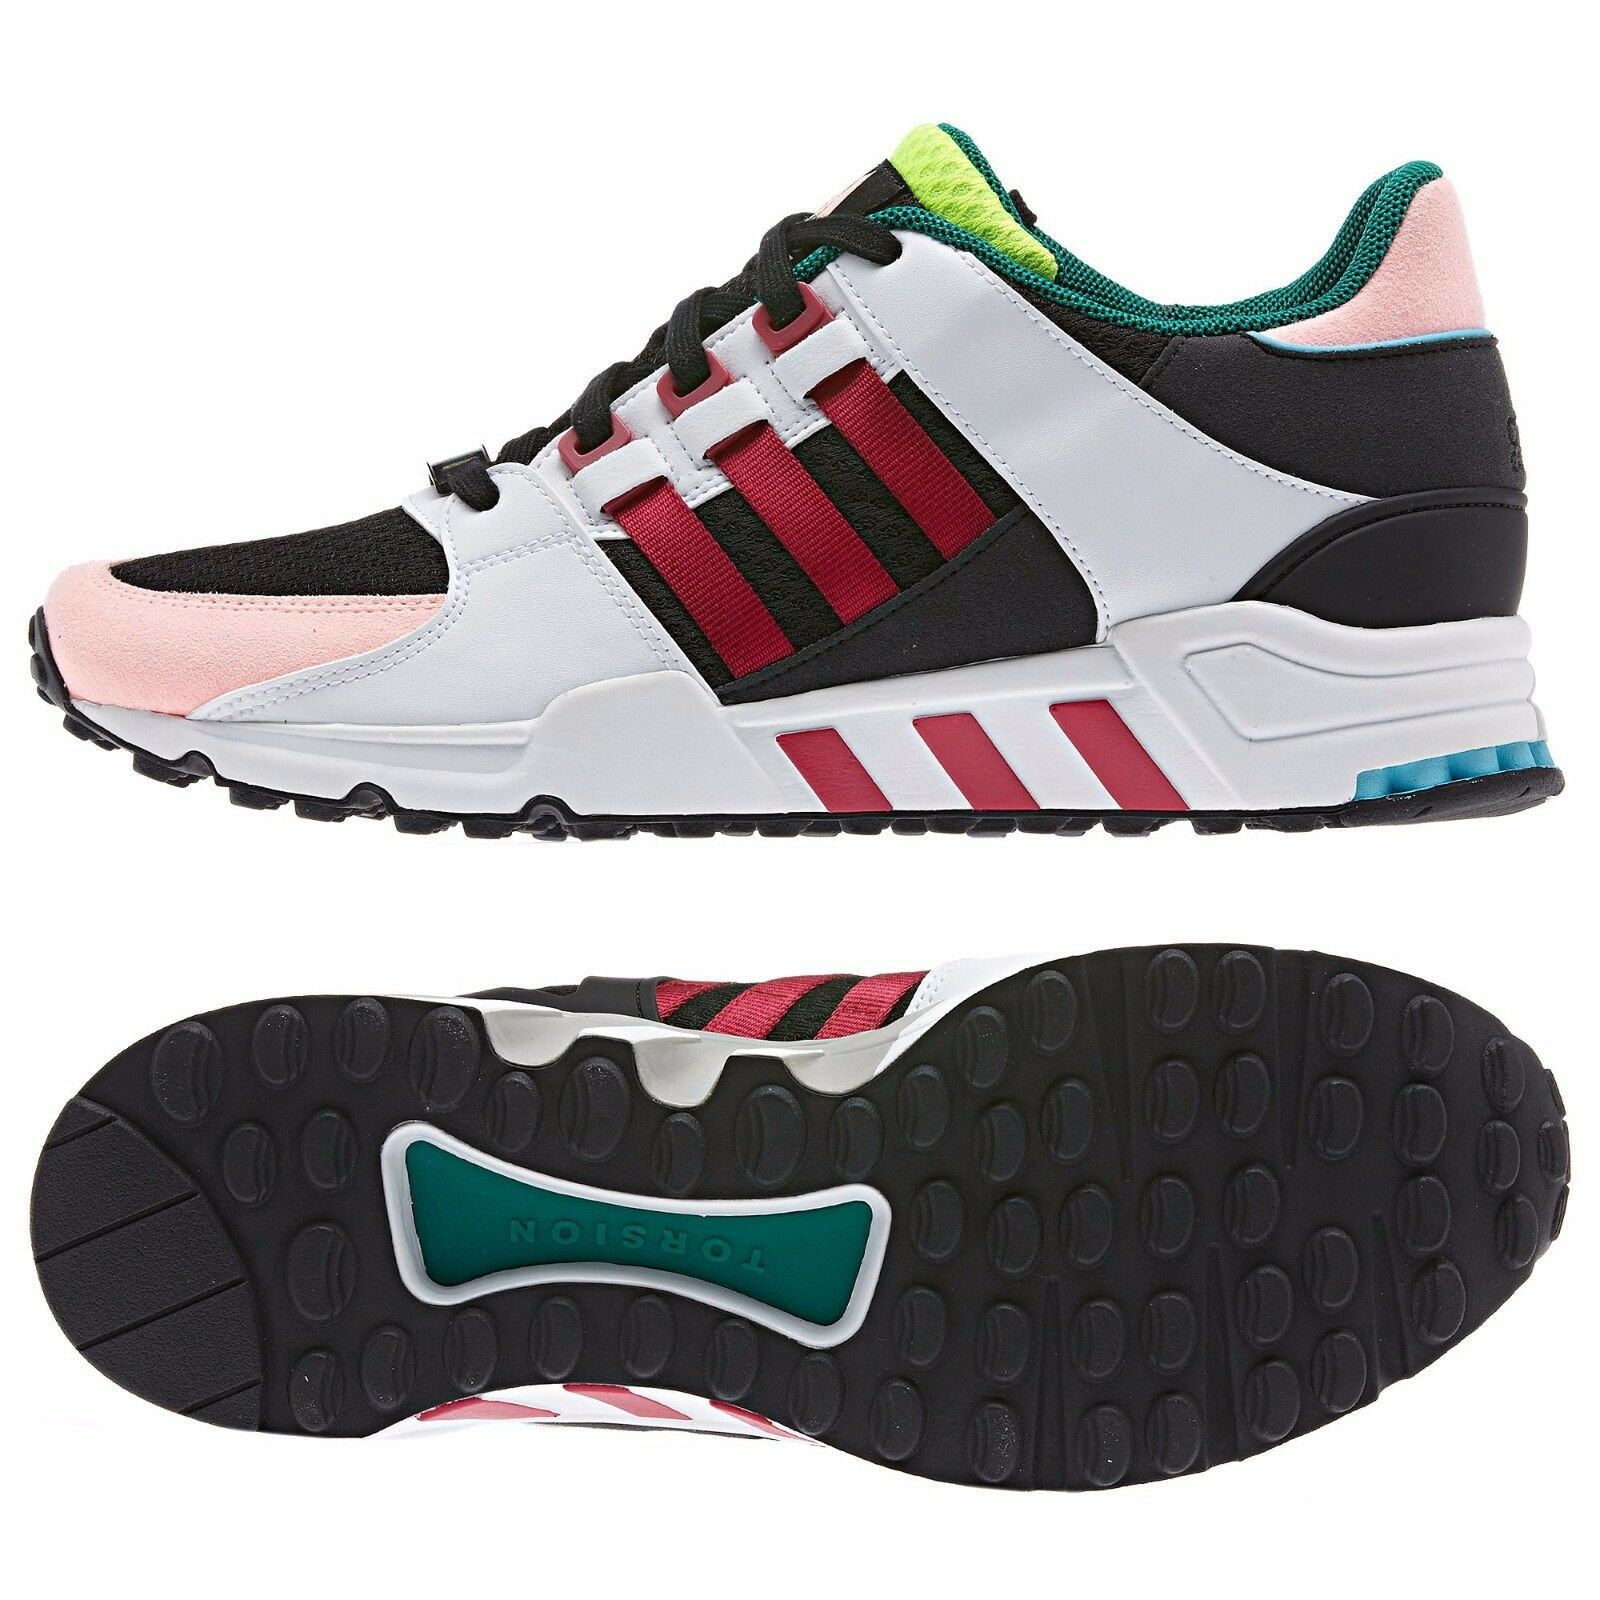 Adidas EQT '93 Equipment Running Support Oddity D67723 Black/White/Red Men Shoes